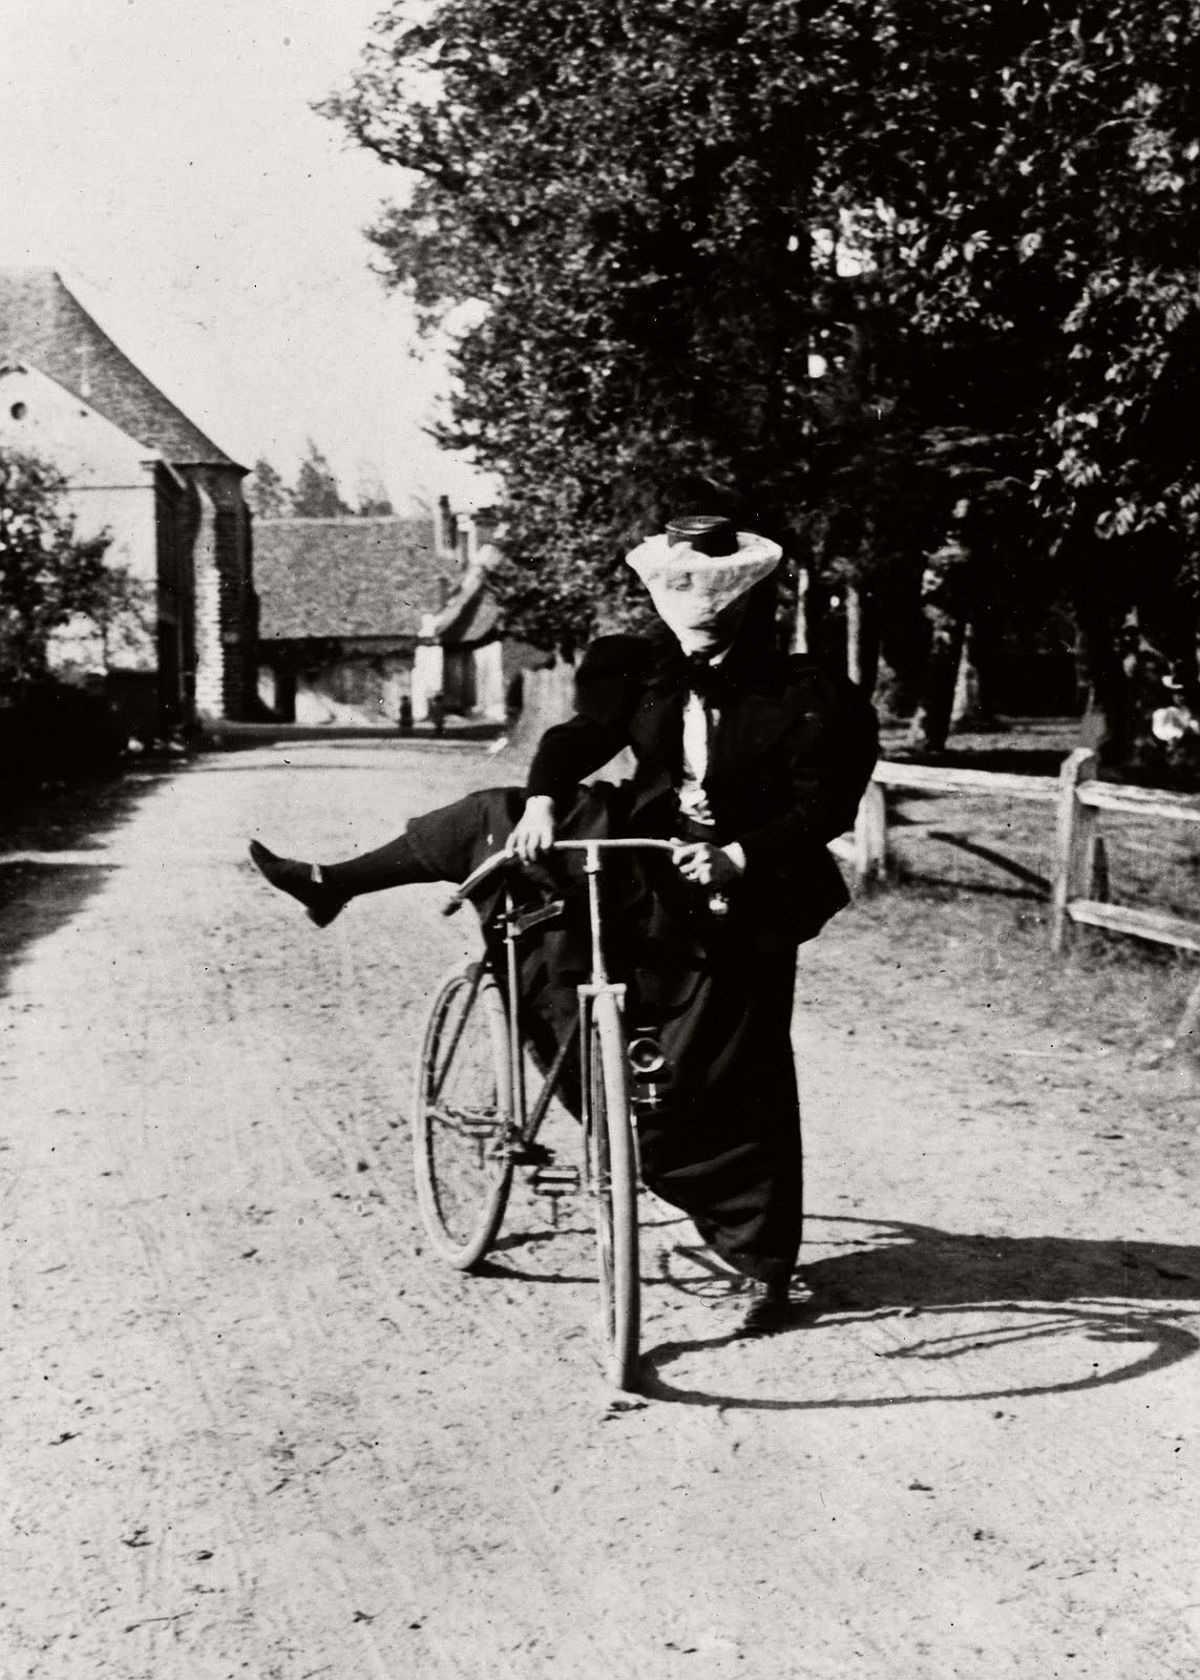 A lady mounts a safety bicycle, 1890. (Getty Images)